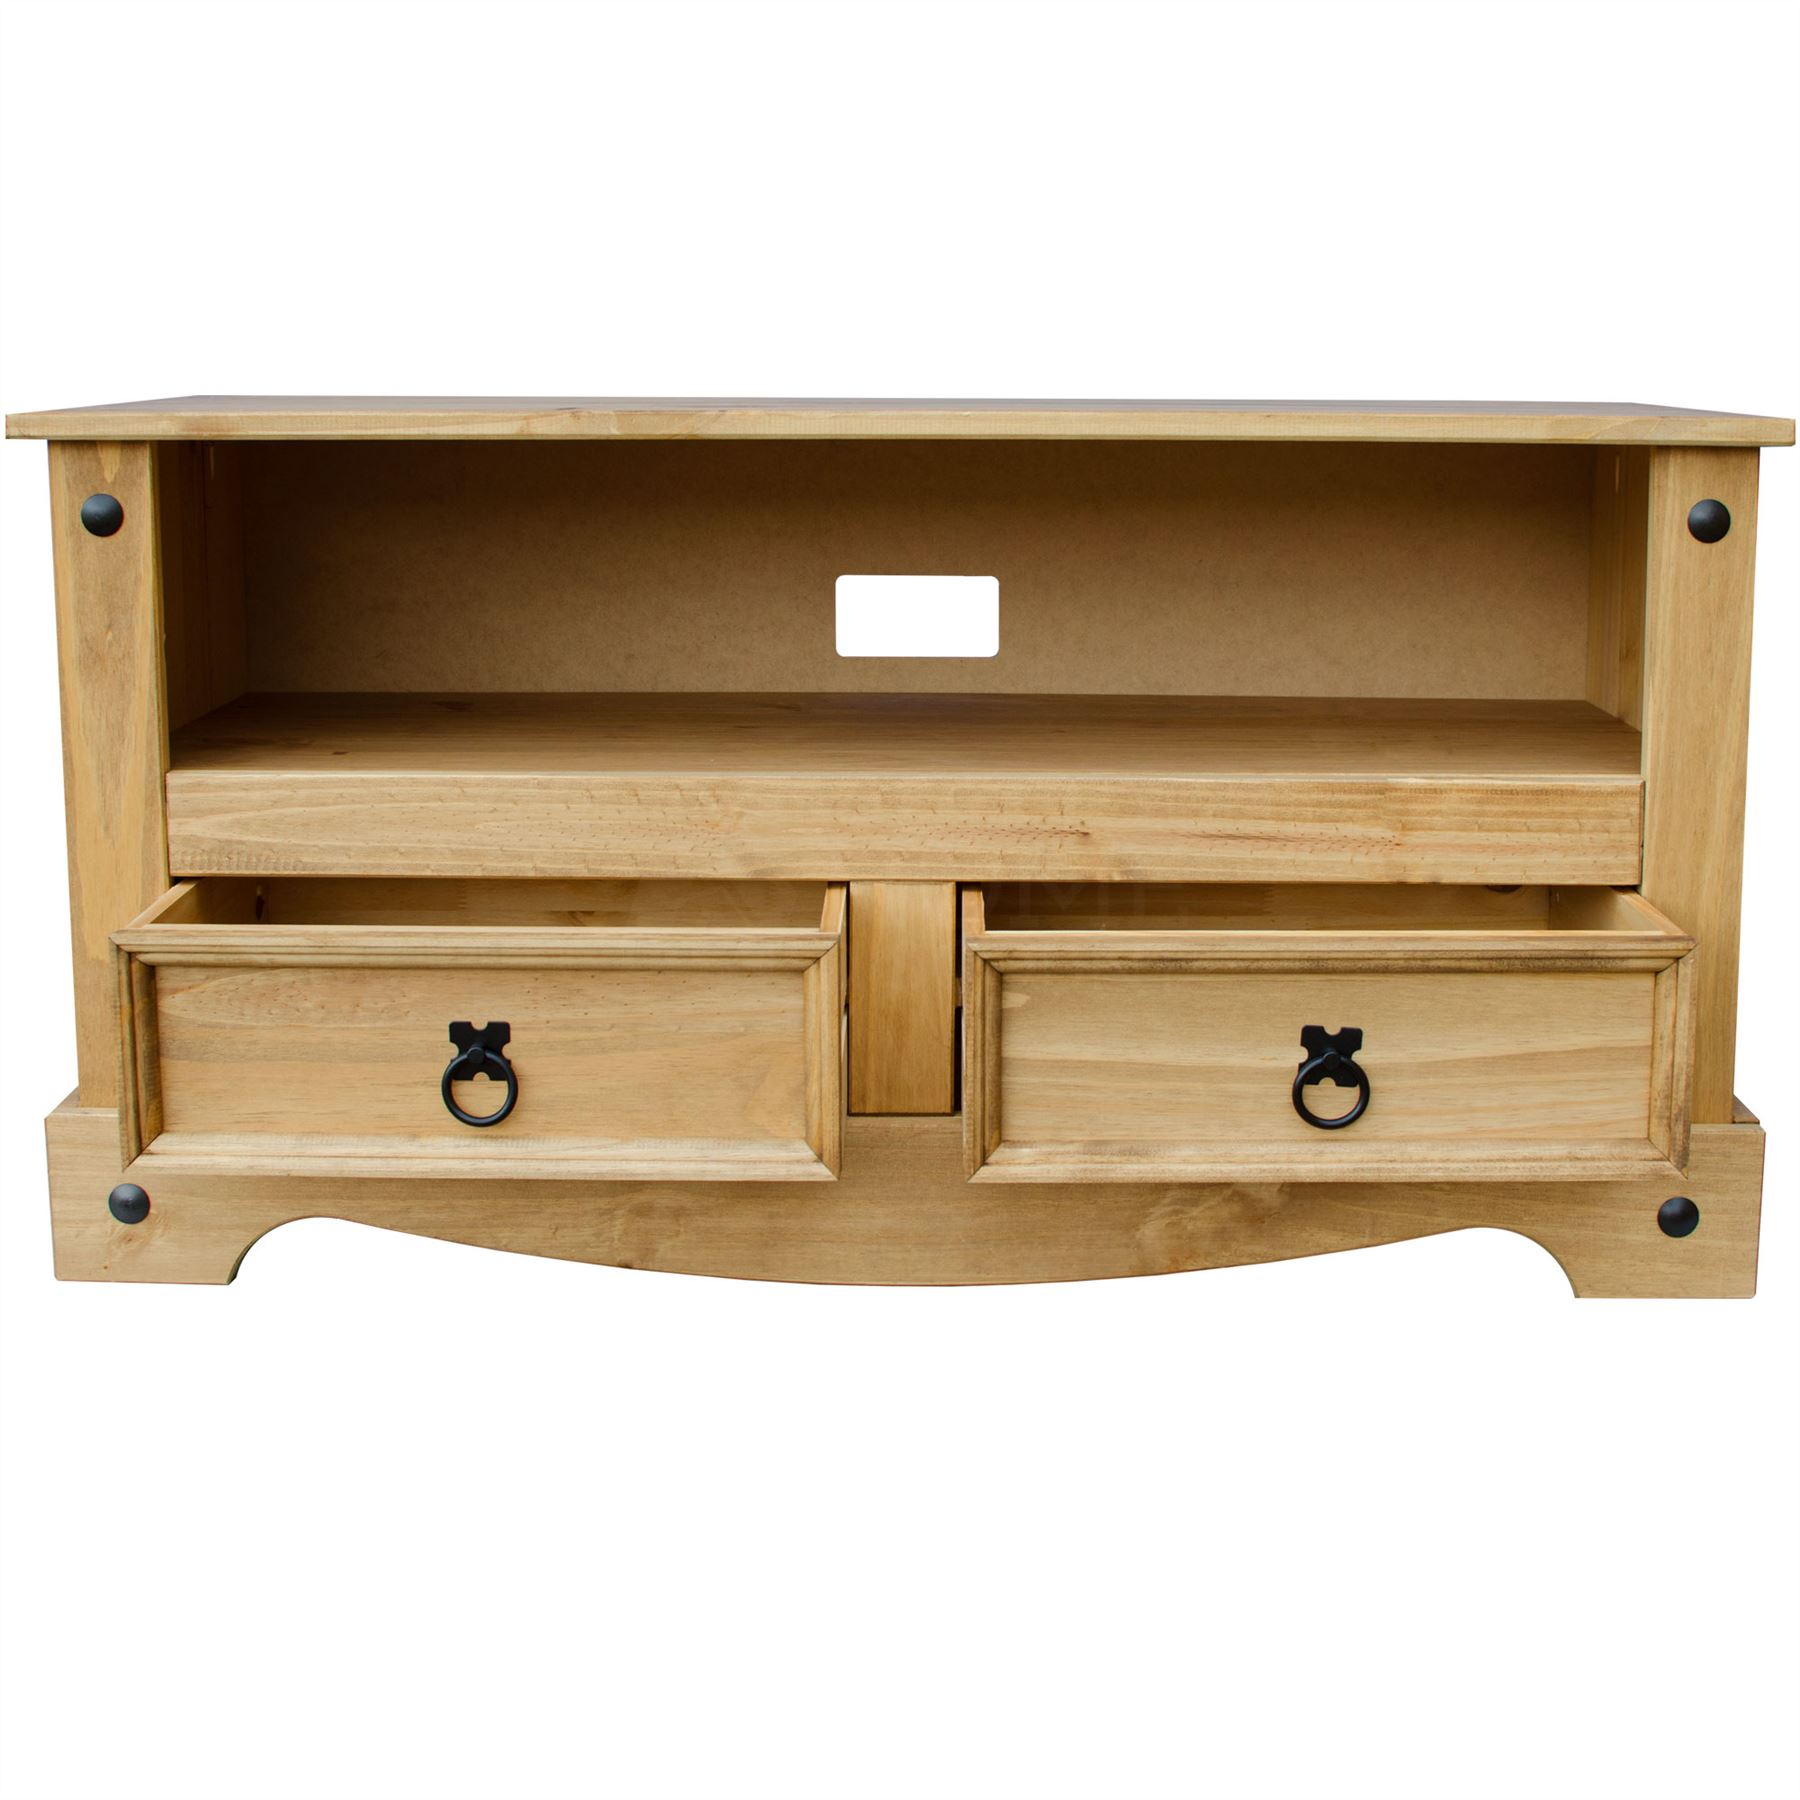 Corona flat screen tv unit stand 2 drawer mexican solid pine by home discount - Television c discount ...